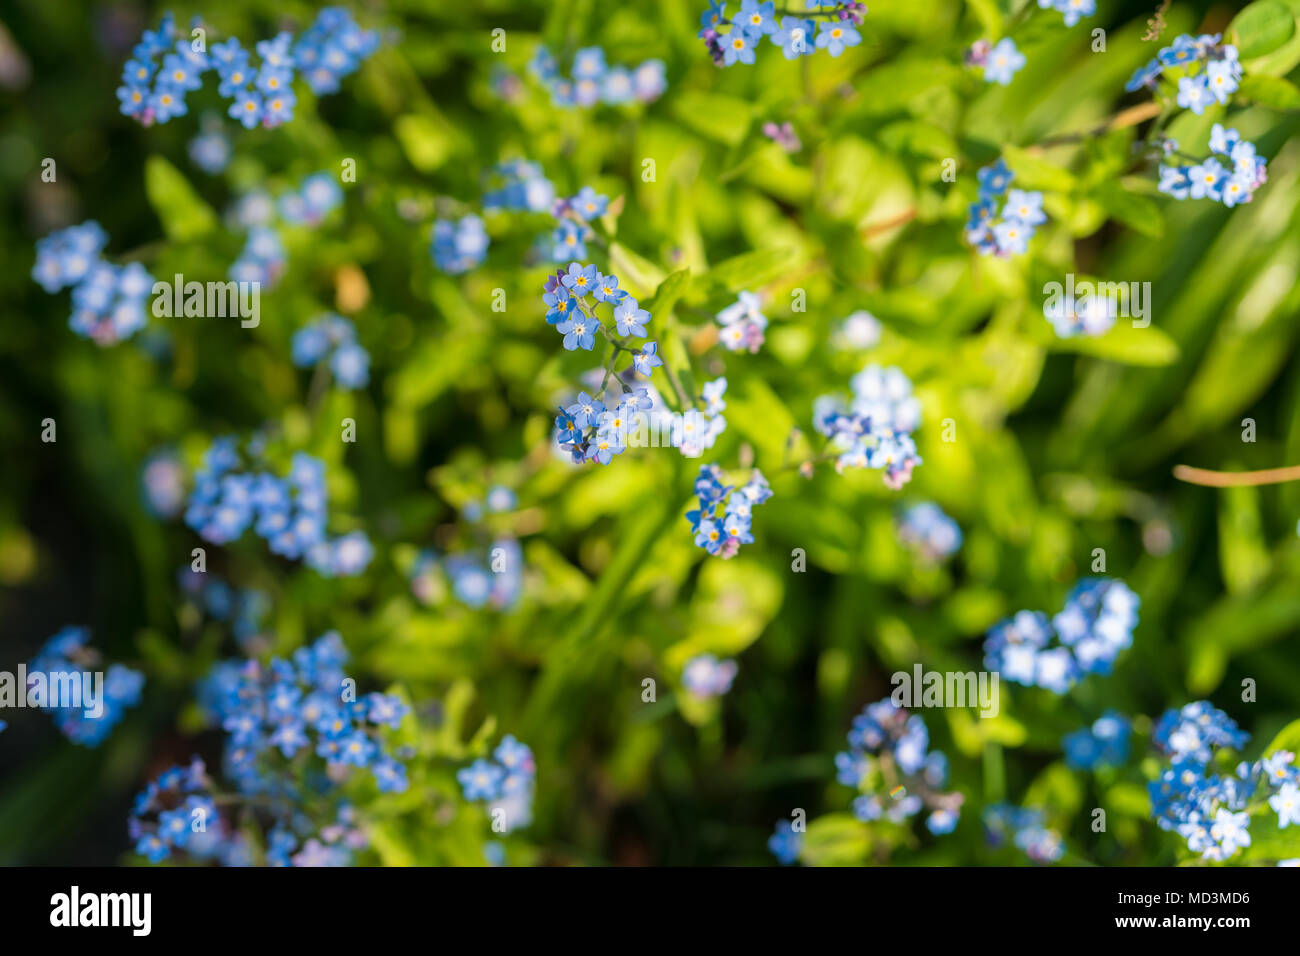 Wild Spring Flowers Blooming In A West London Garden Photo Date